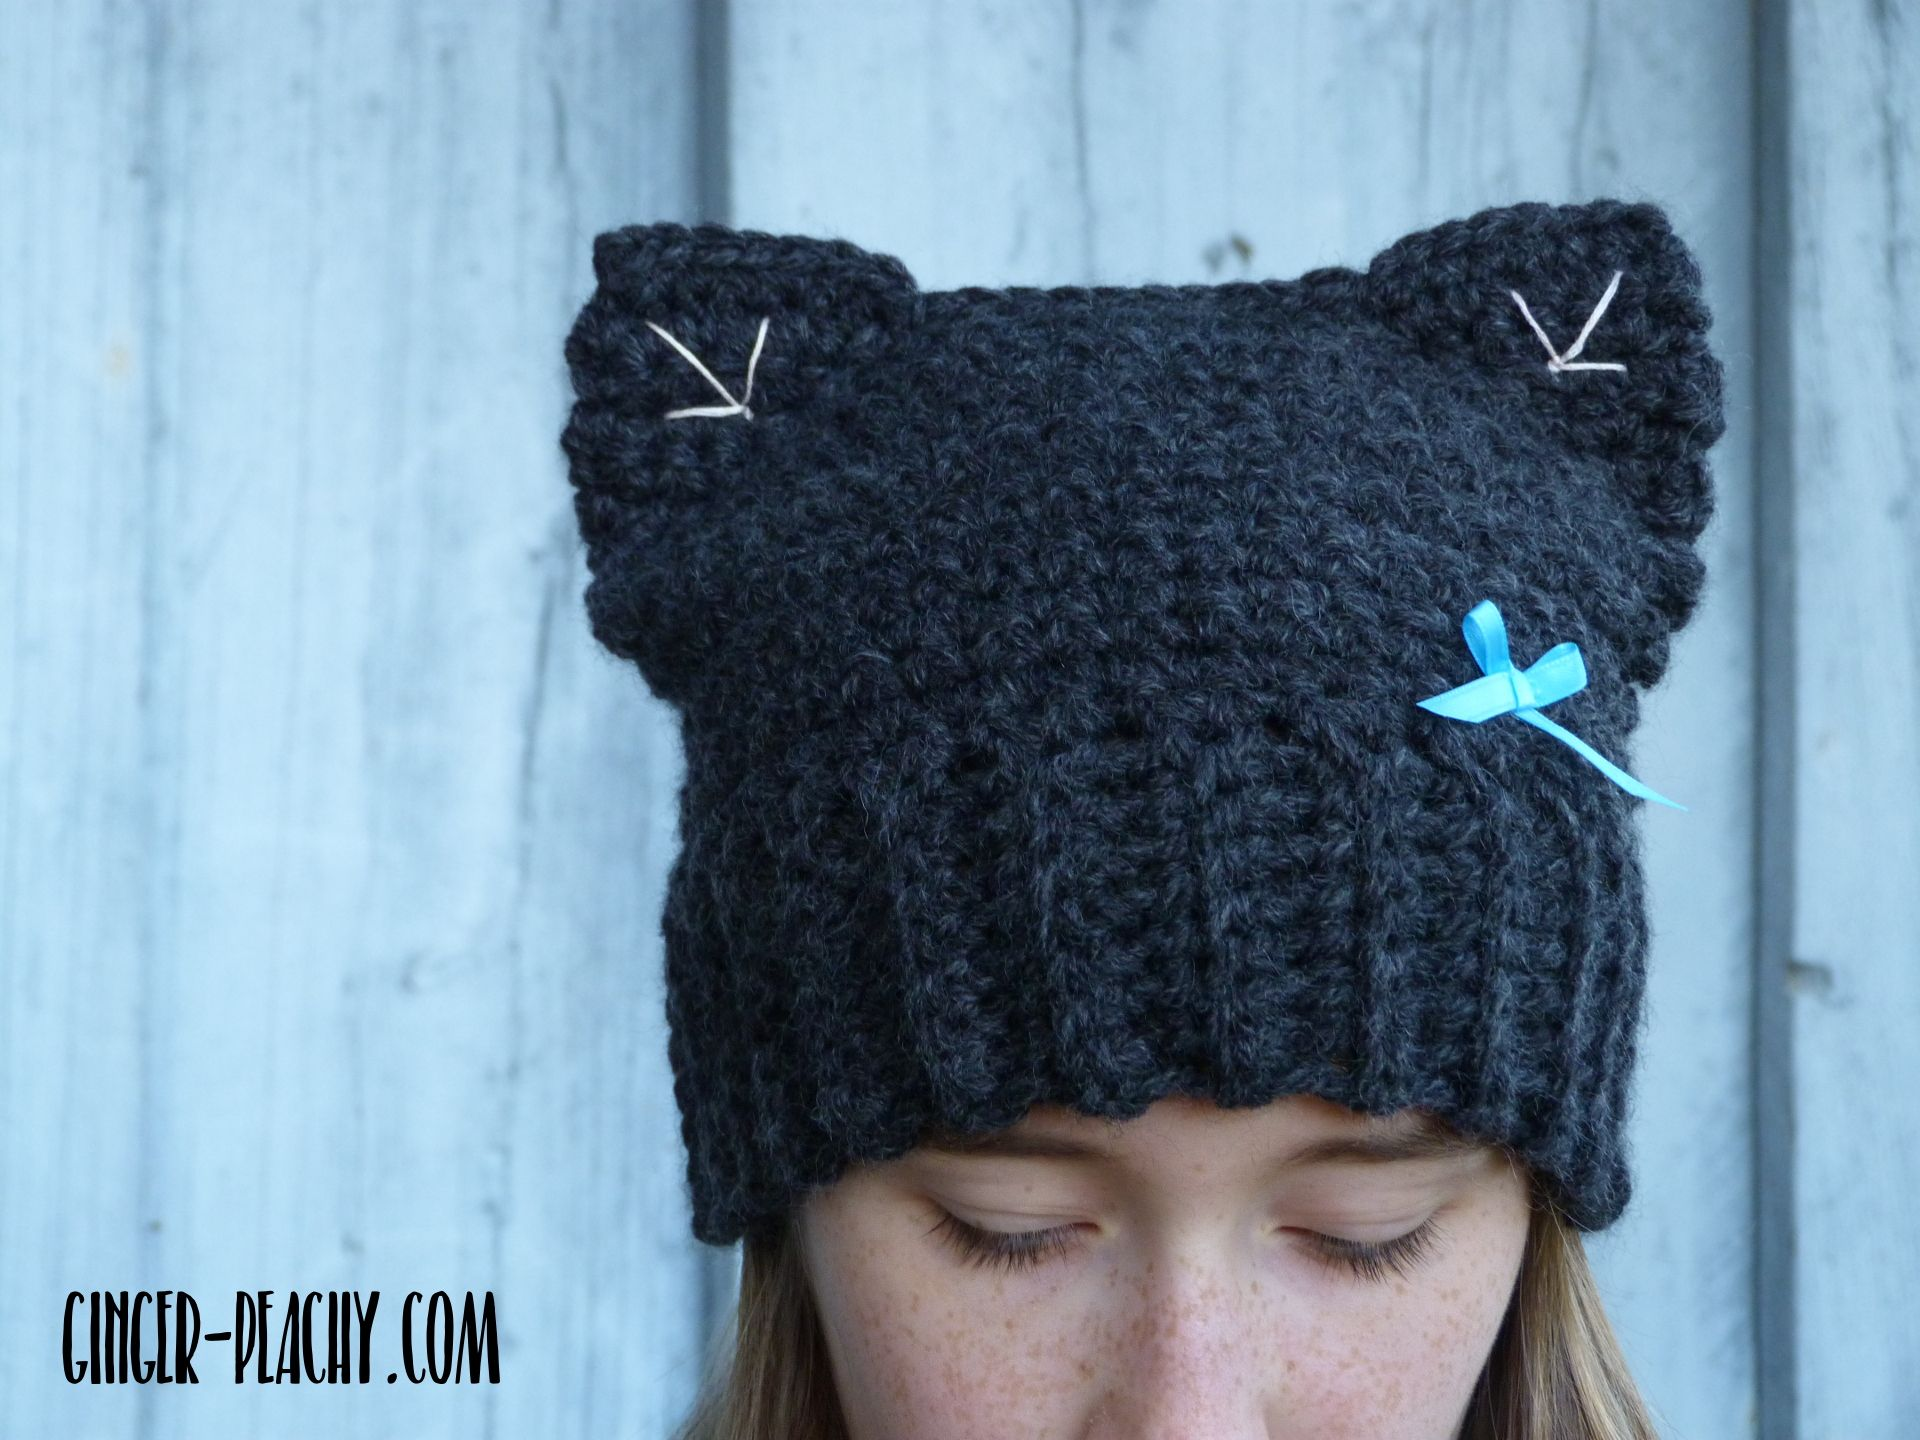 Looking for a new twist on the beanie pattern? Add ears! Introducing ...